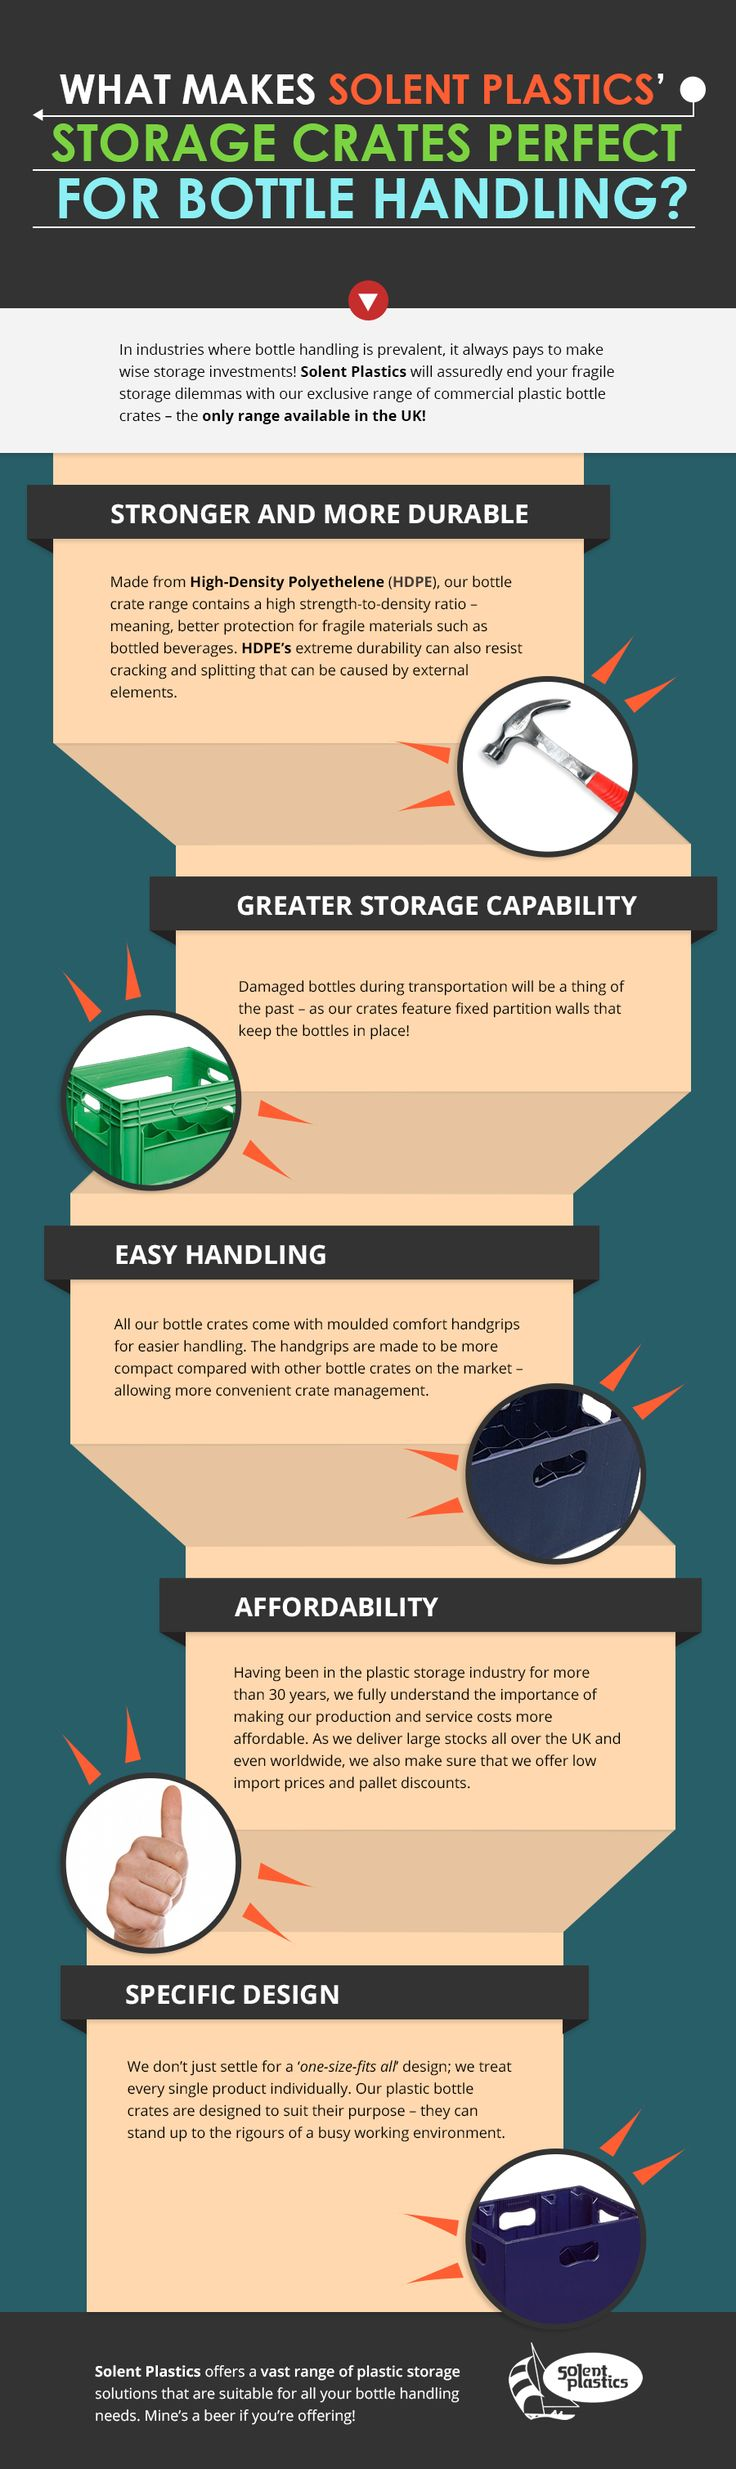 What Makes Solent Plastics' Storage Crates Perfect for Bottle Handling?